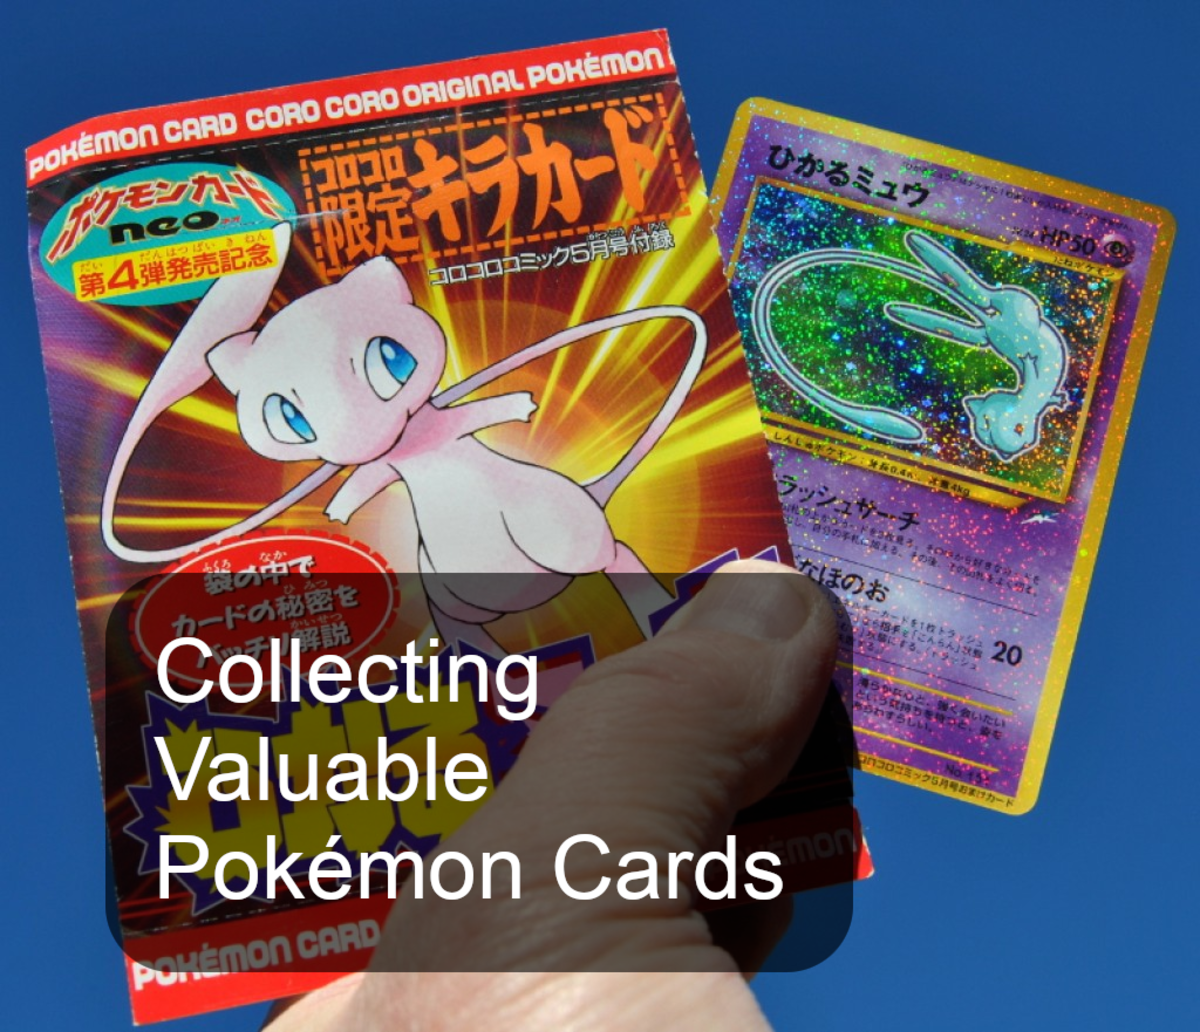 A Guide to Collecting Valuable Pokémon Promo Cards